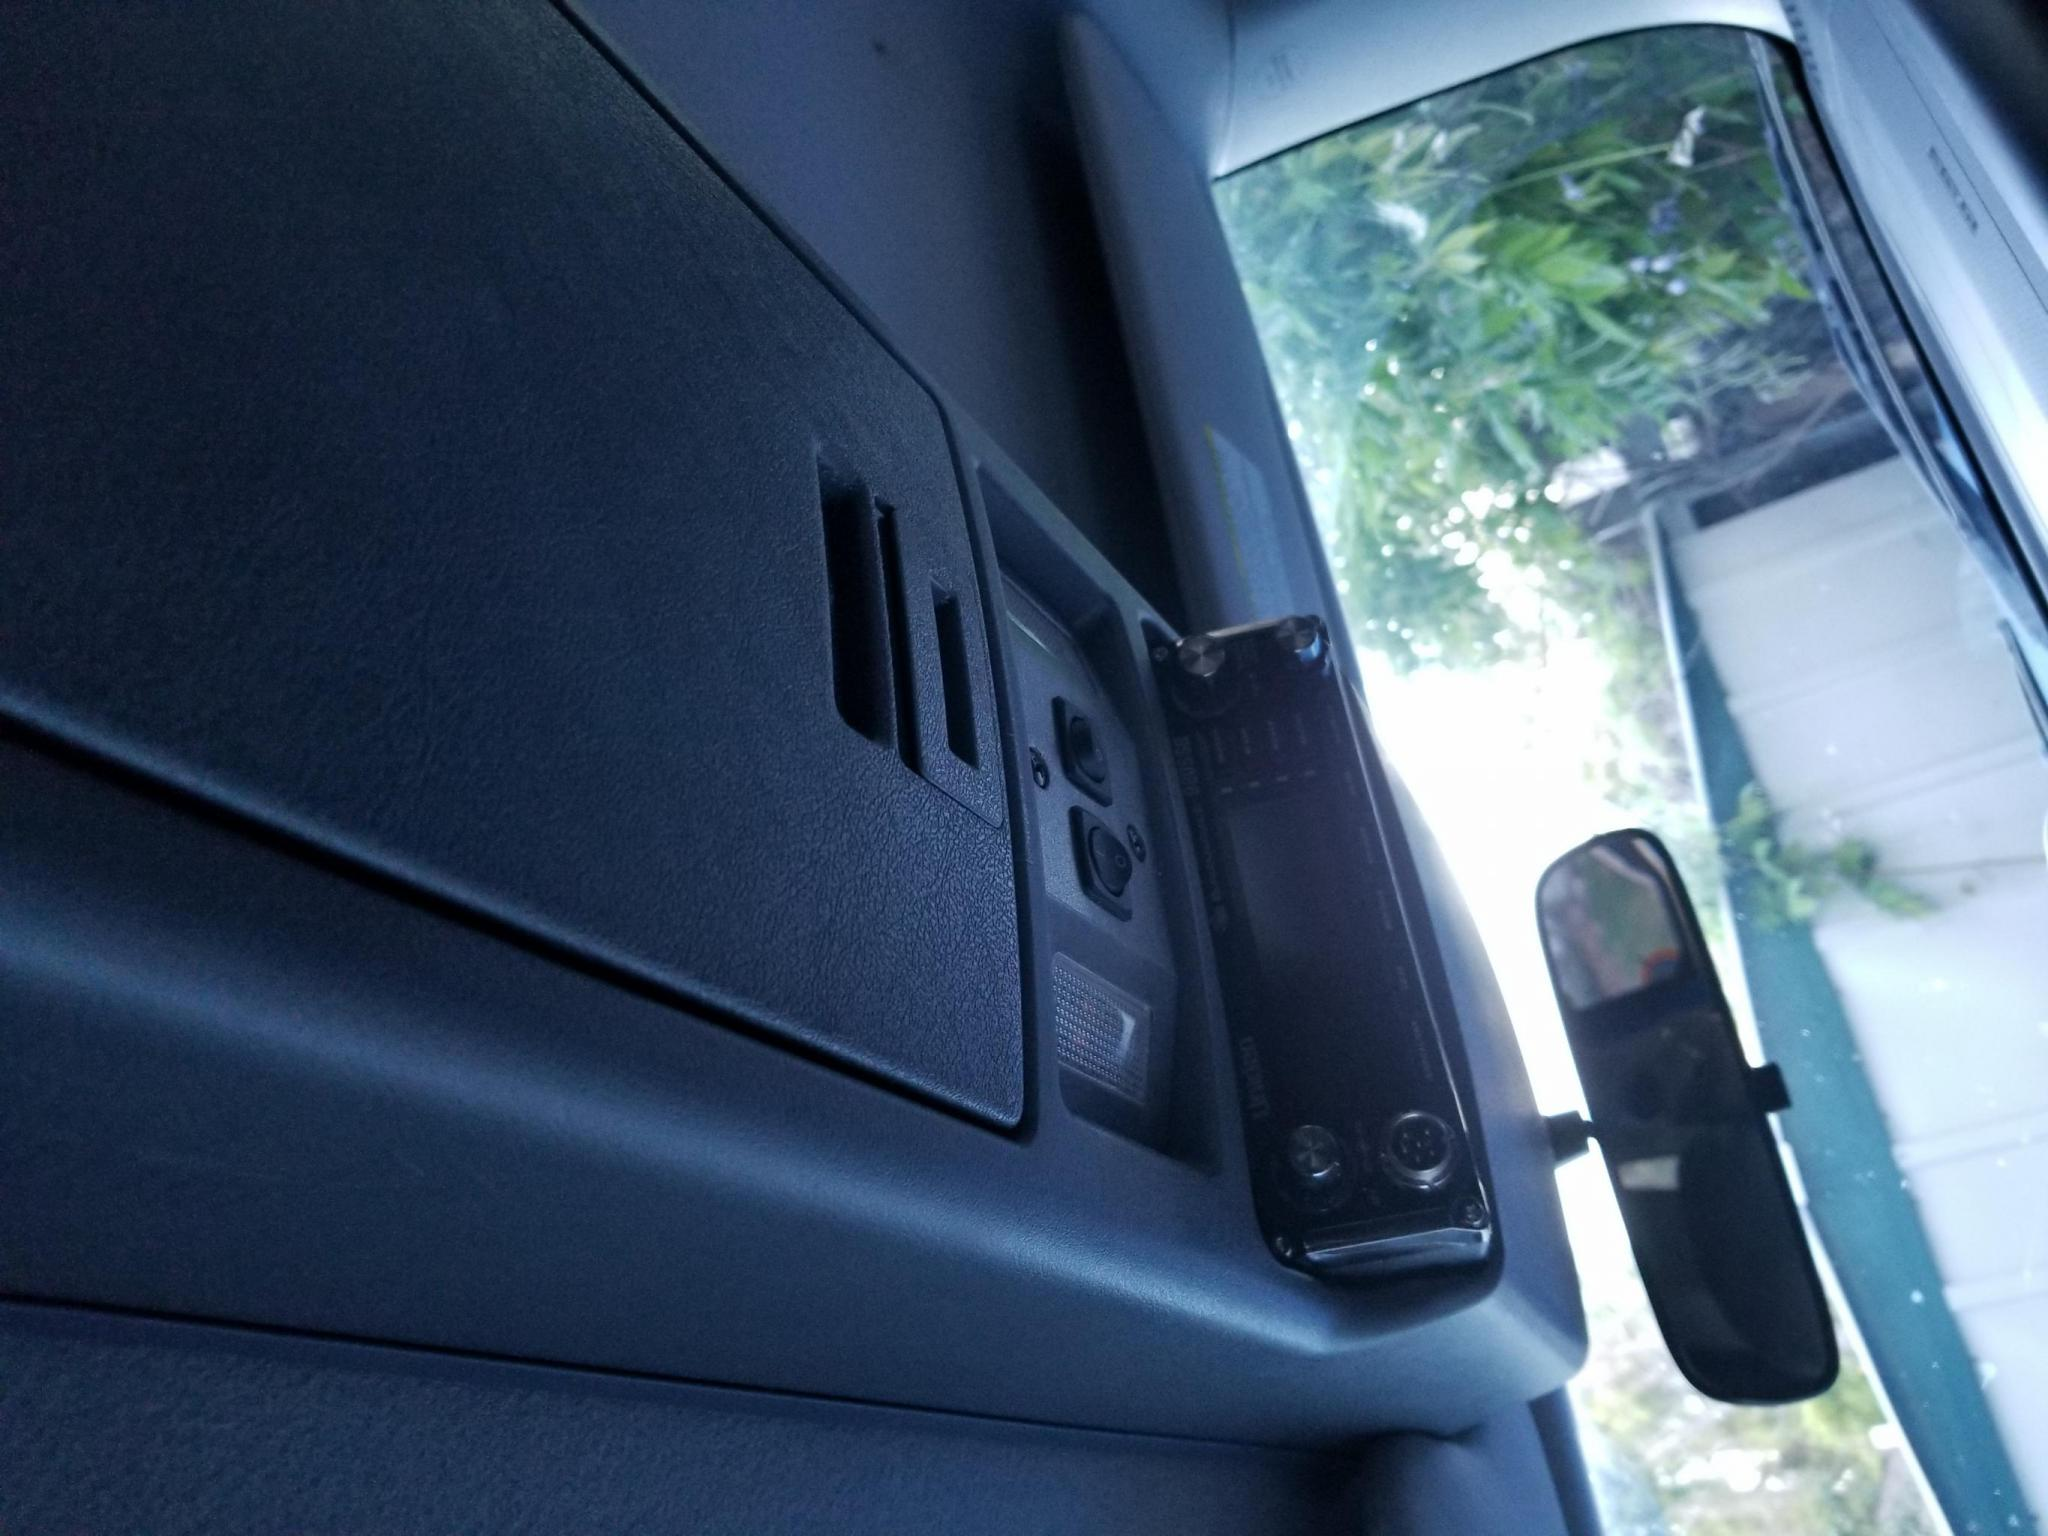 Outback Roof Console Full Install 2008 Tte Toyota Fj